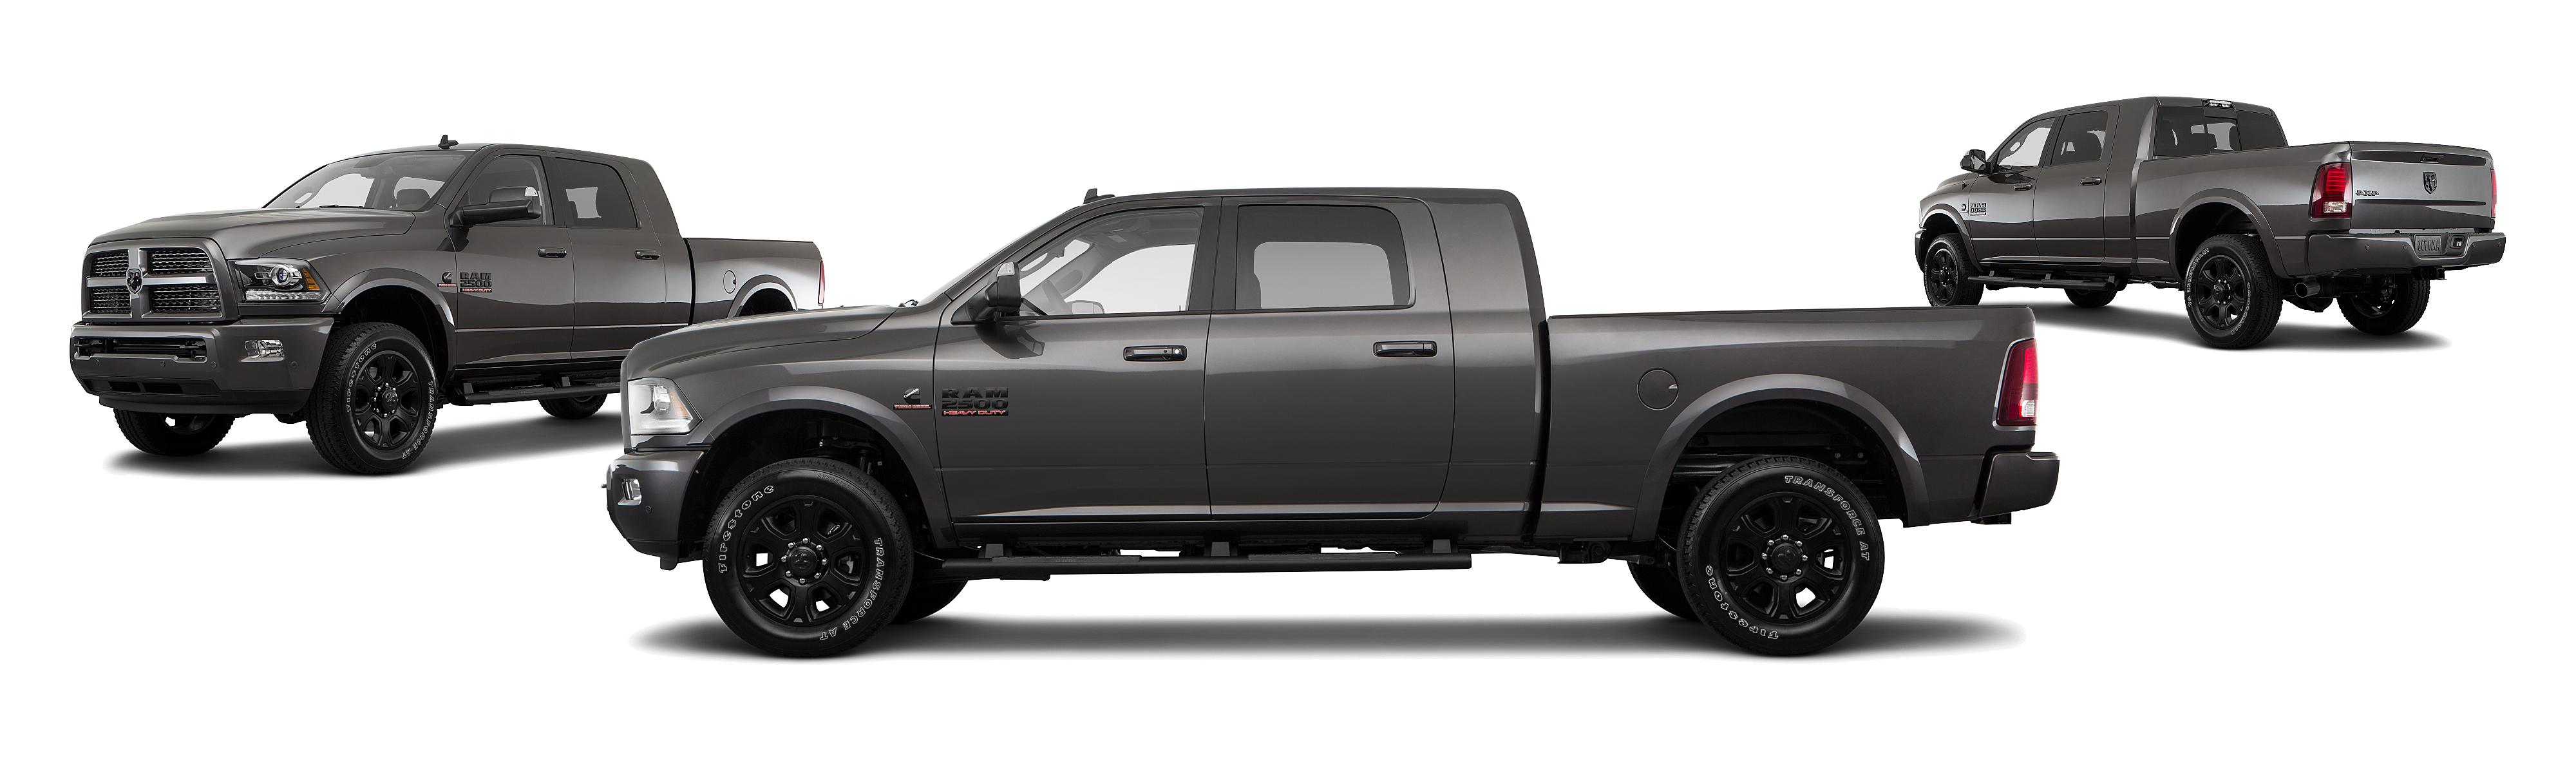 2017 dodge ram 2500 mega cab 2018 cars models. Black Bedroom Furniture Sets. Home Design Ideas